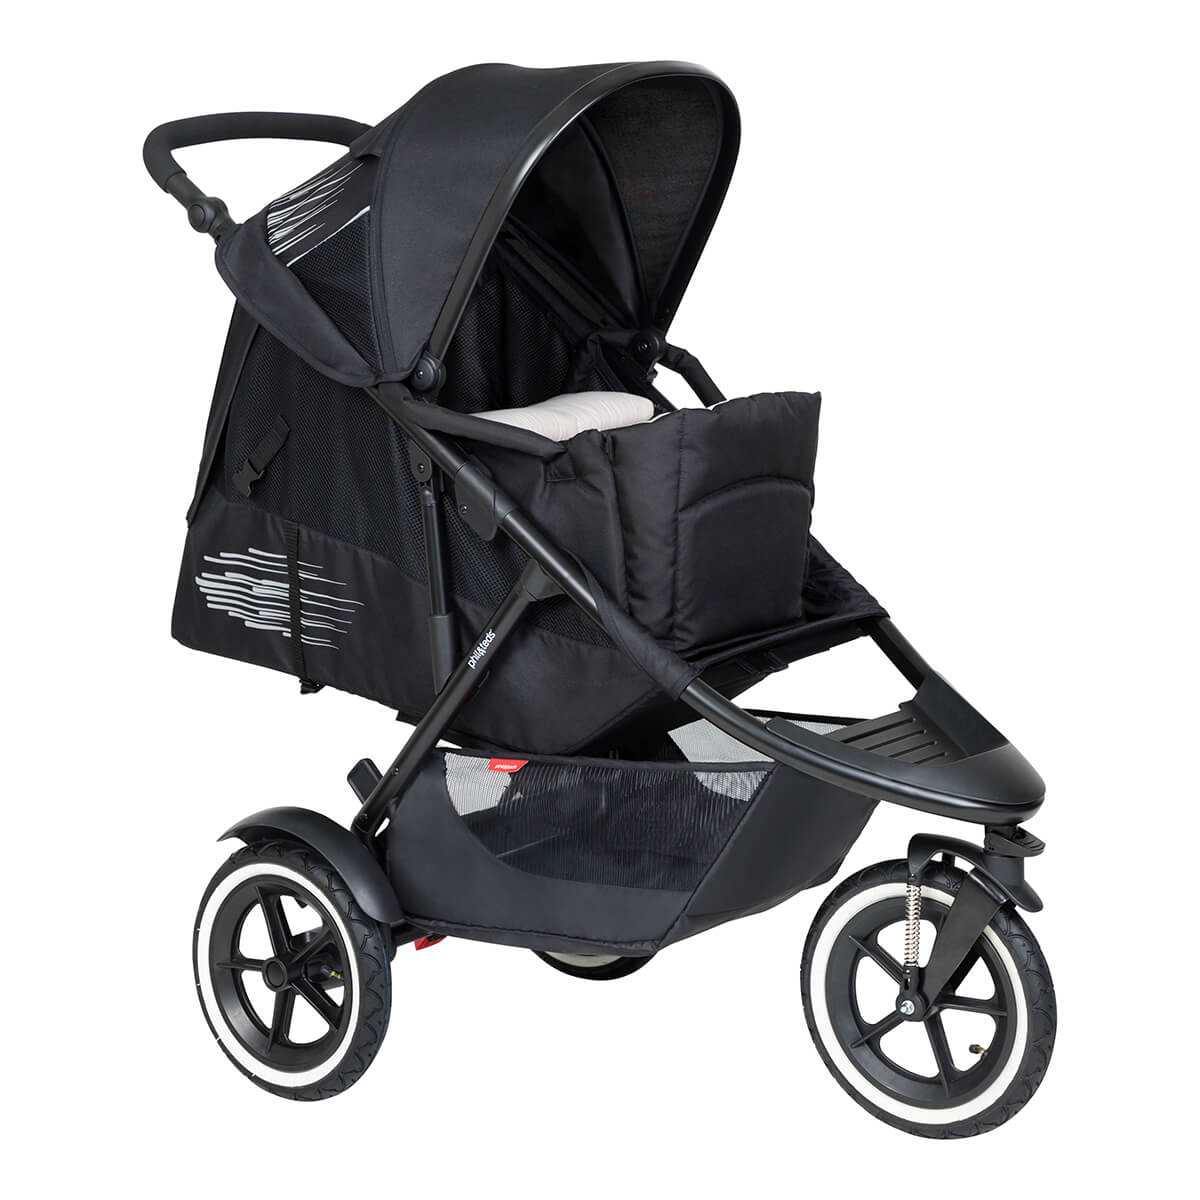 https://cdn.accentuate.io/4546157510761/19119322529897/philteds-sport-buggy-with-cocoon-full-recline-v1625778226375.jpg?1200x1200